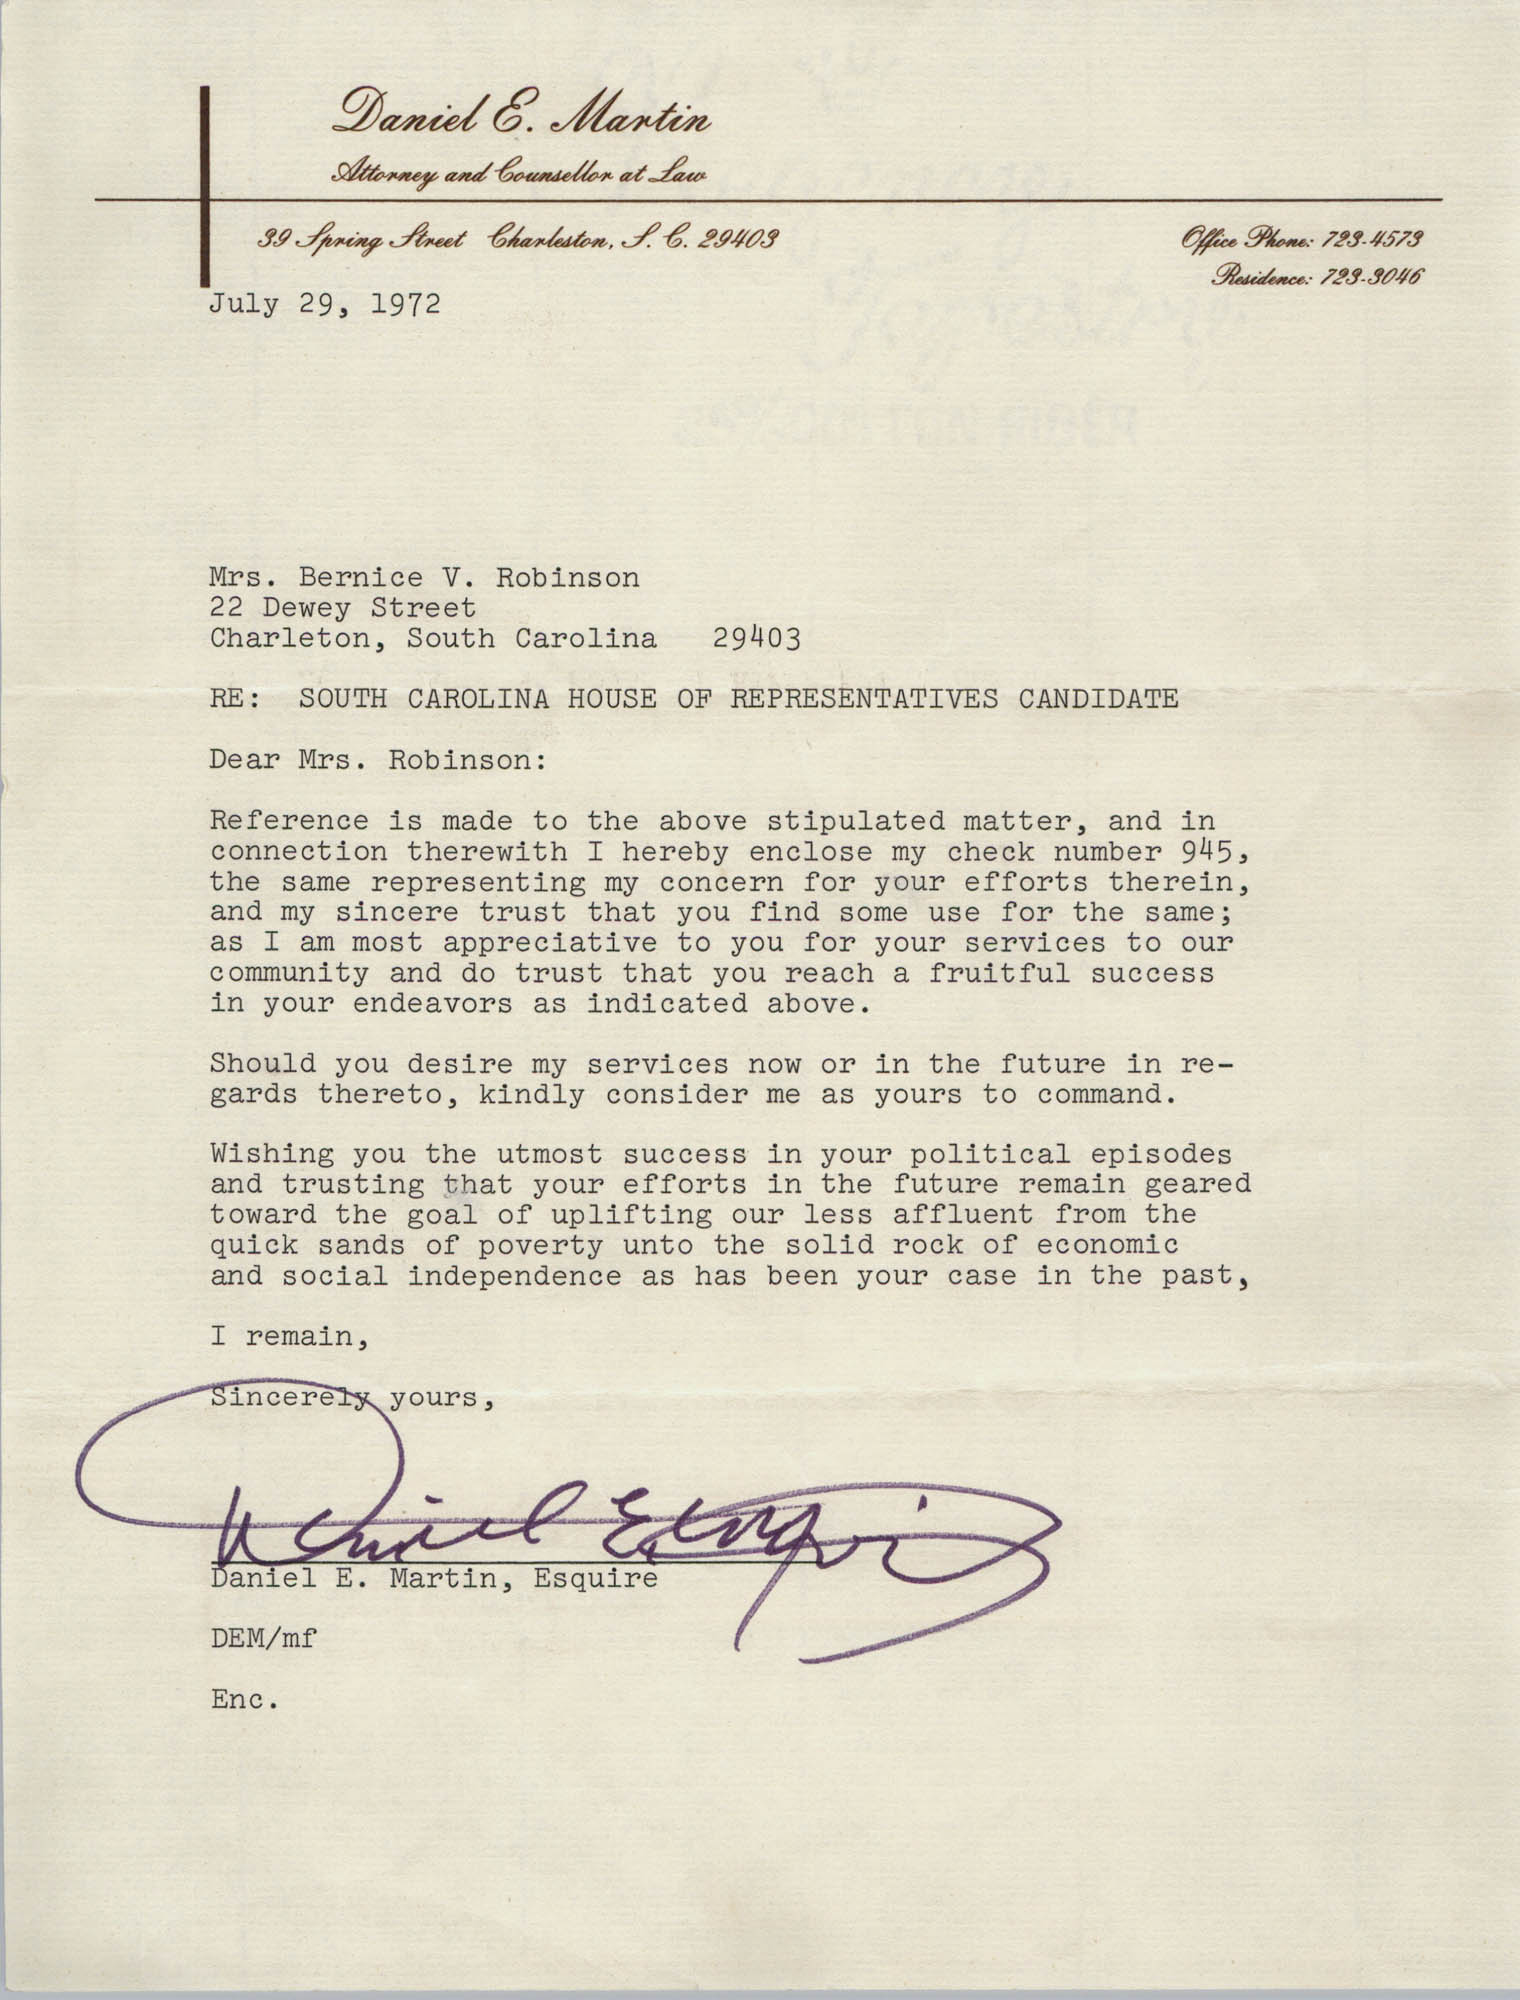 Letter from Daniel E. Martin to Bernice Robinson, July 29, 1972